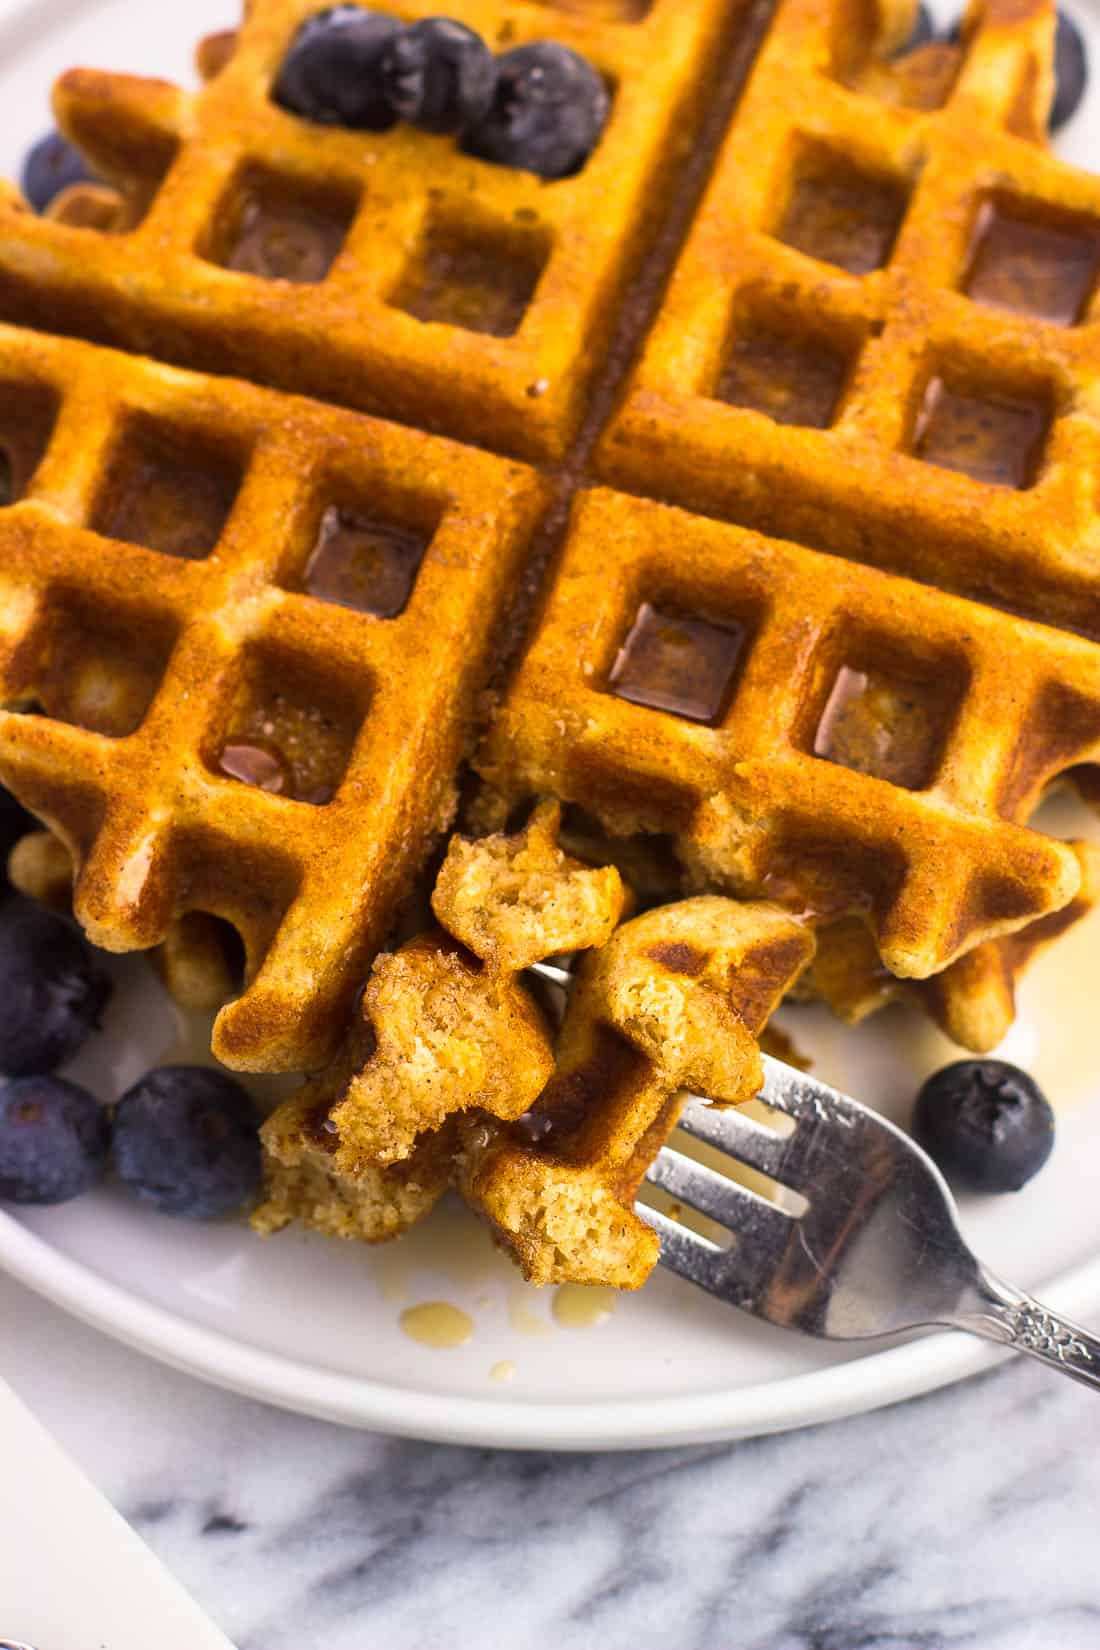 A forkful of waffle on a plate with maple syrup and blueberries